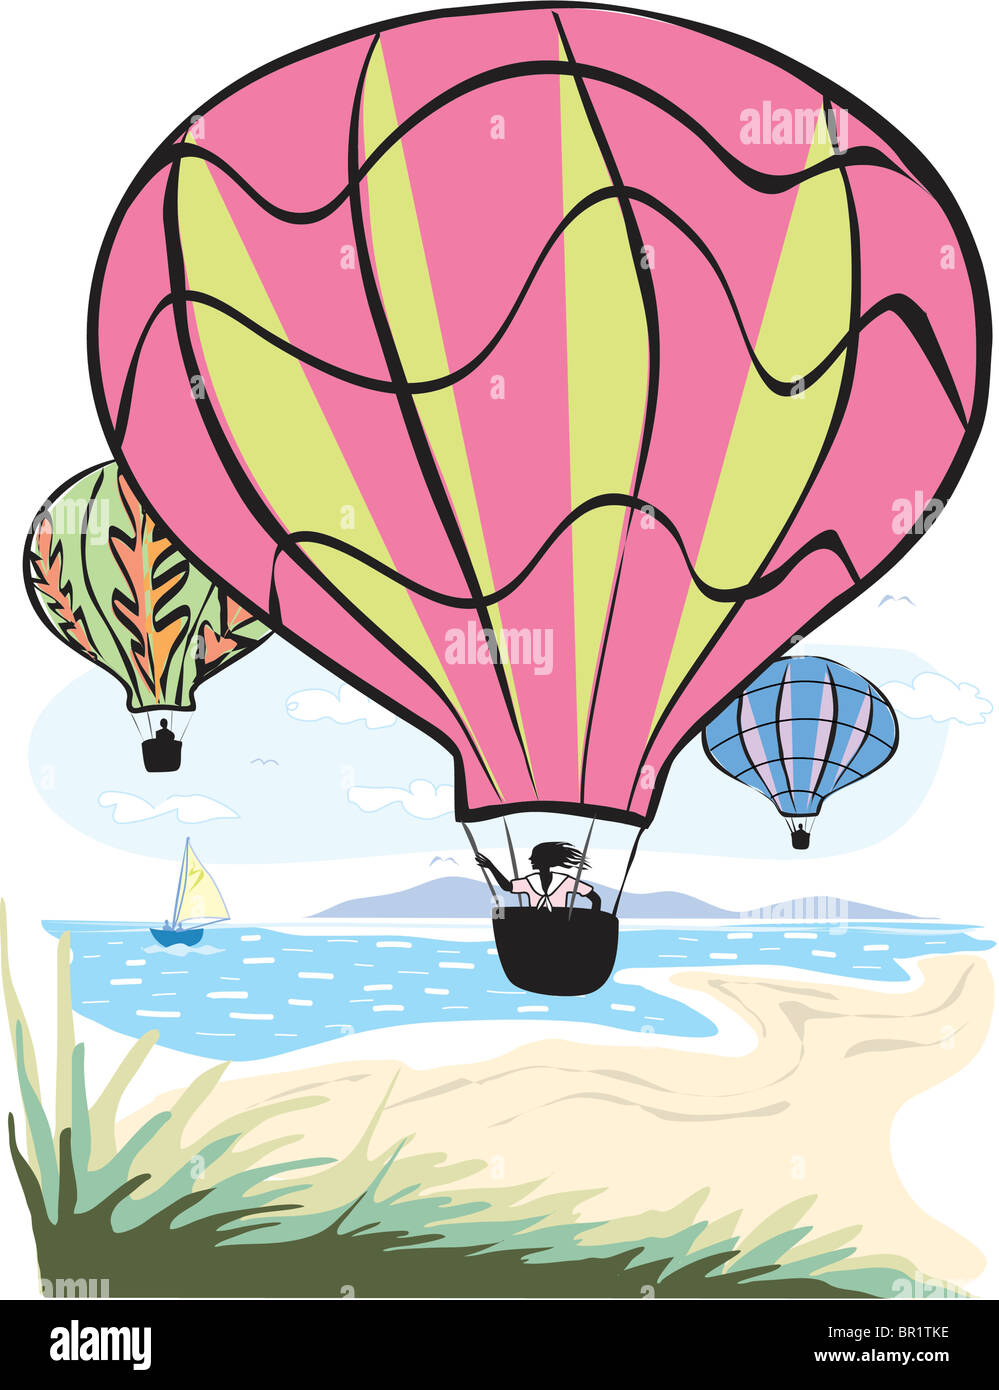 An illustration of people sightseeing on hot air balloons Stock Photo